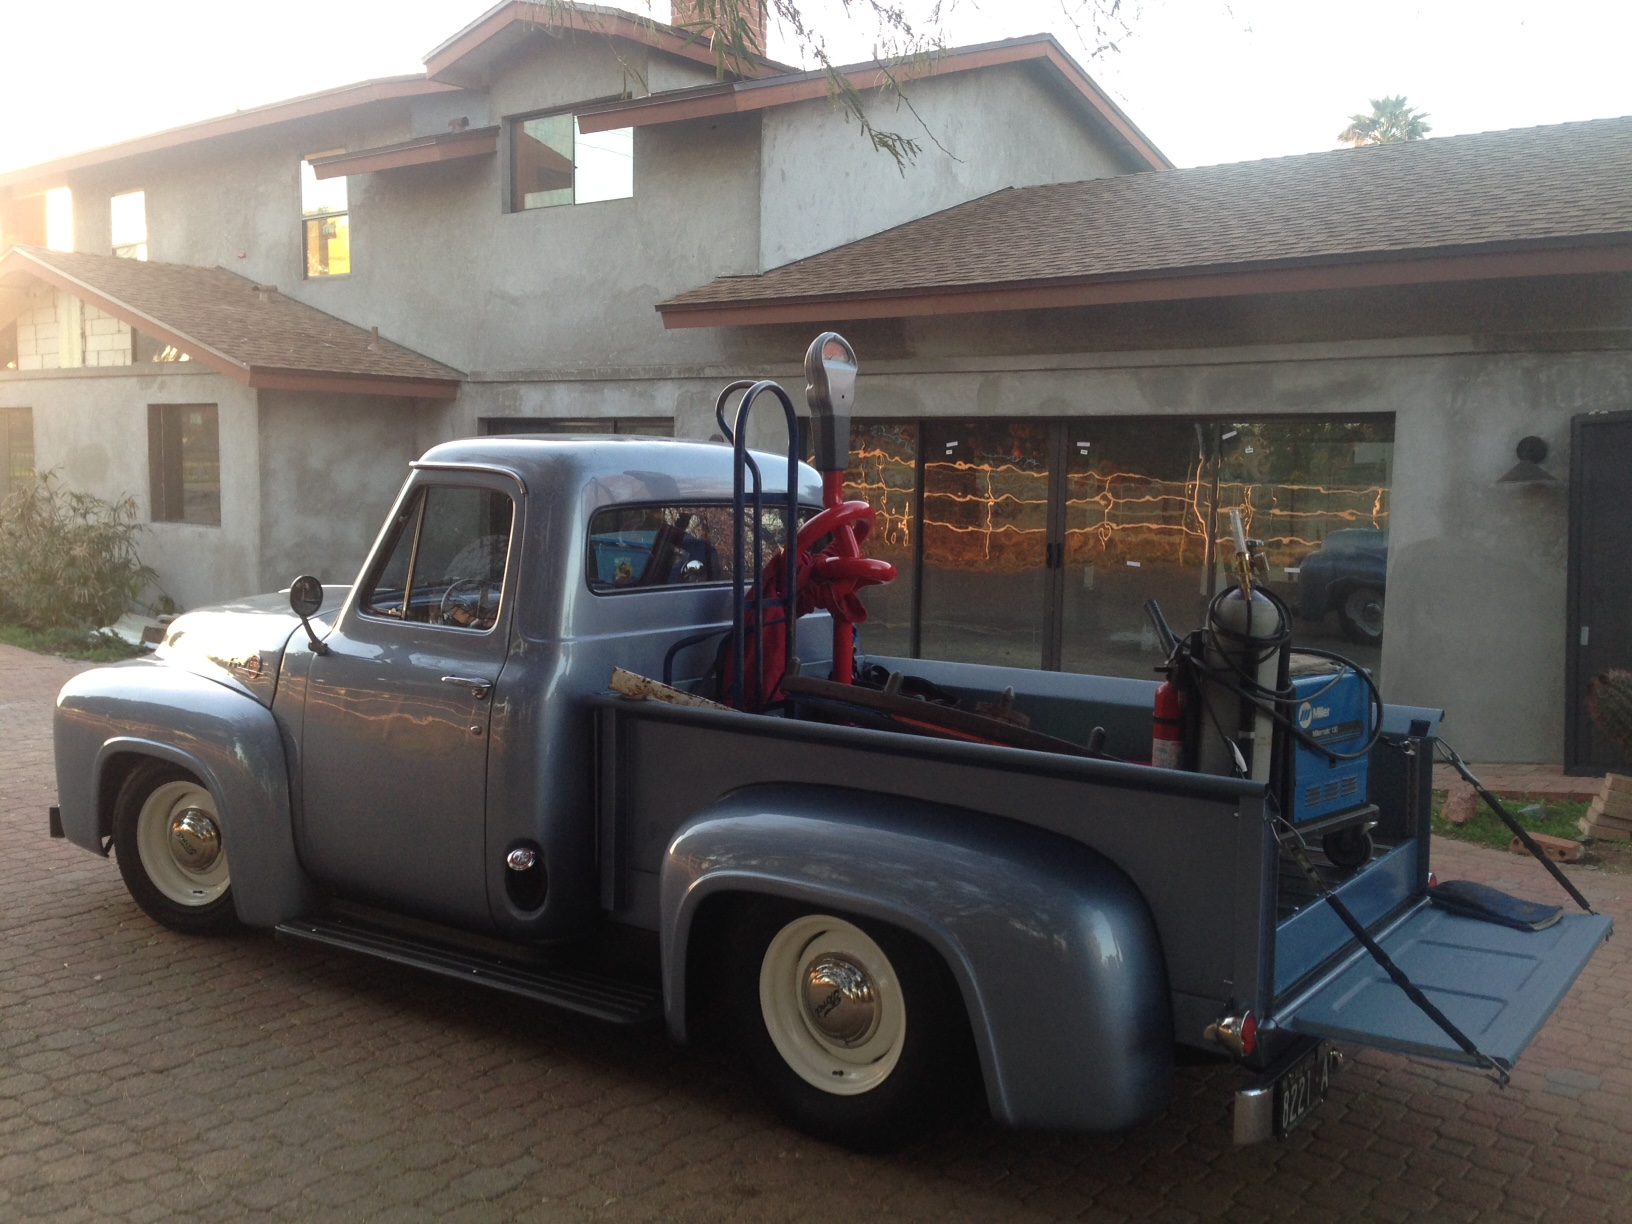 truckkjunk-jpg Cool Review About Chevy S10 tow Capacity with Breathtaking Gallery Cars Review